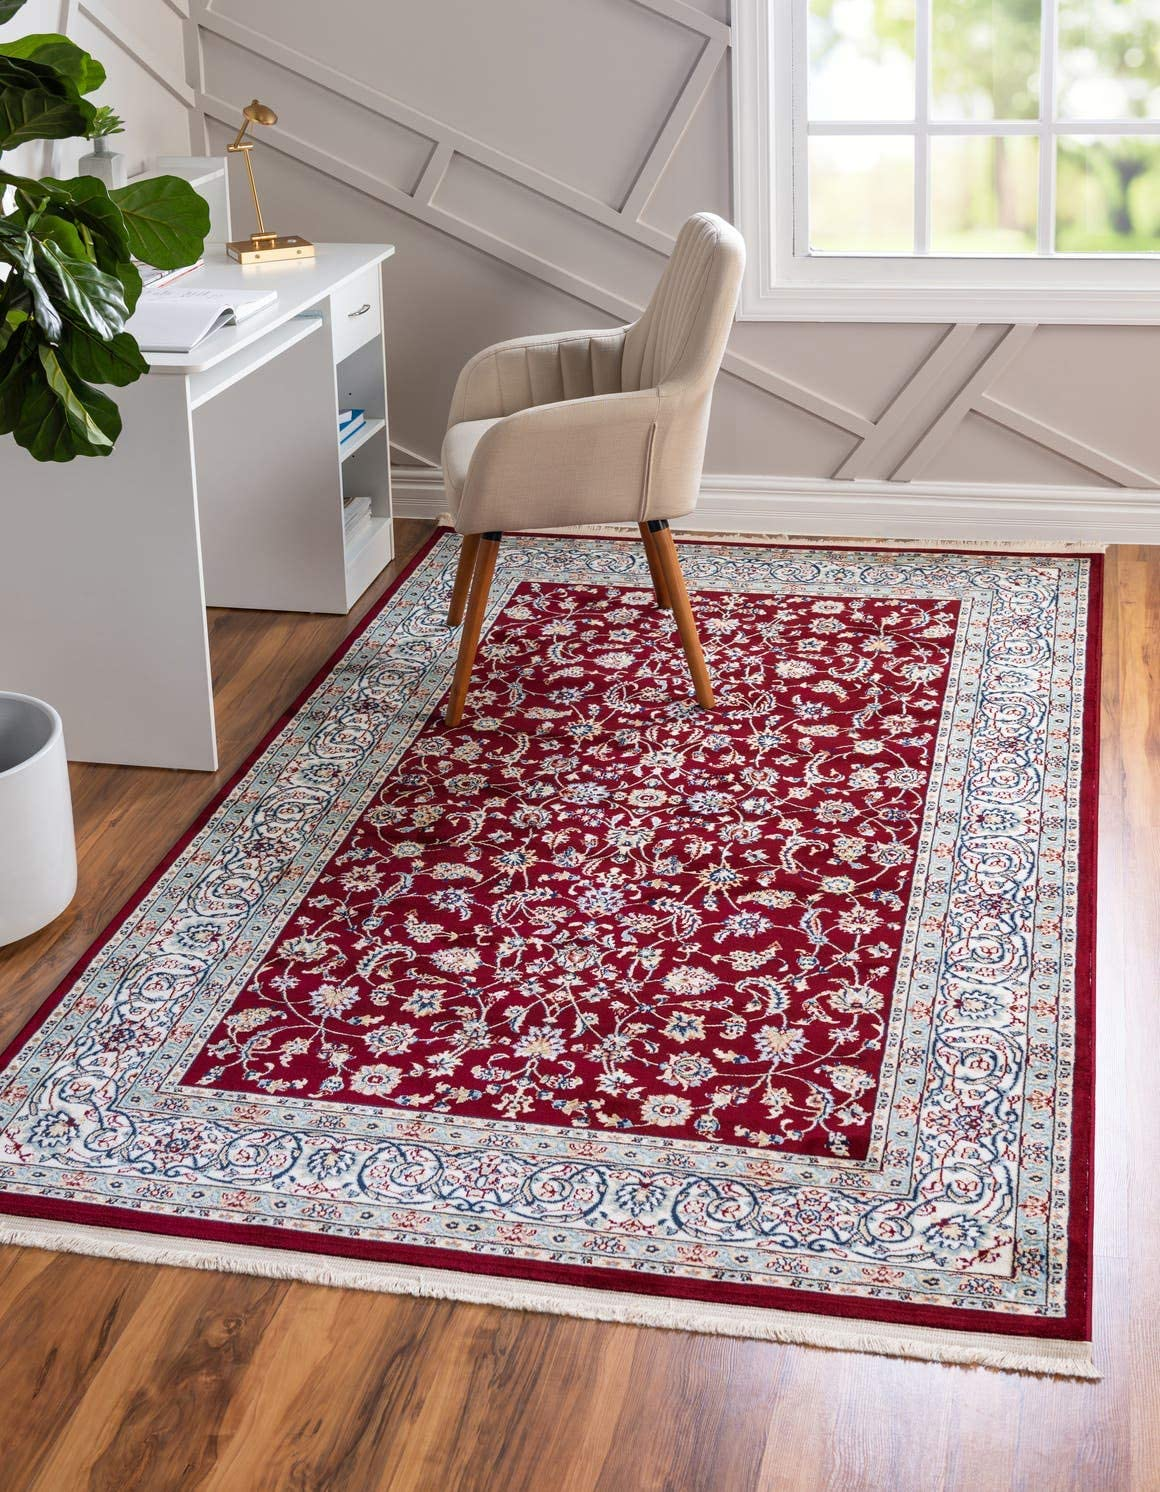 Unique Loom Narenj Collection Classic Traditional Repeating Pattern Burgundy Area Rug 5 0 x 8 0